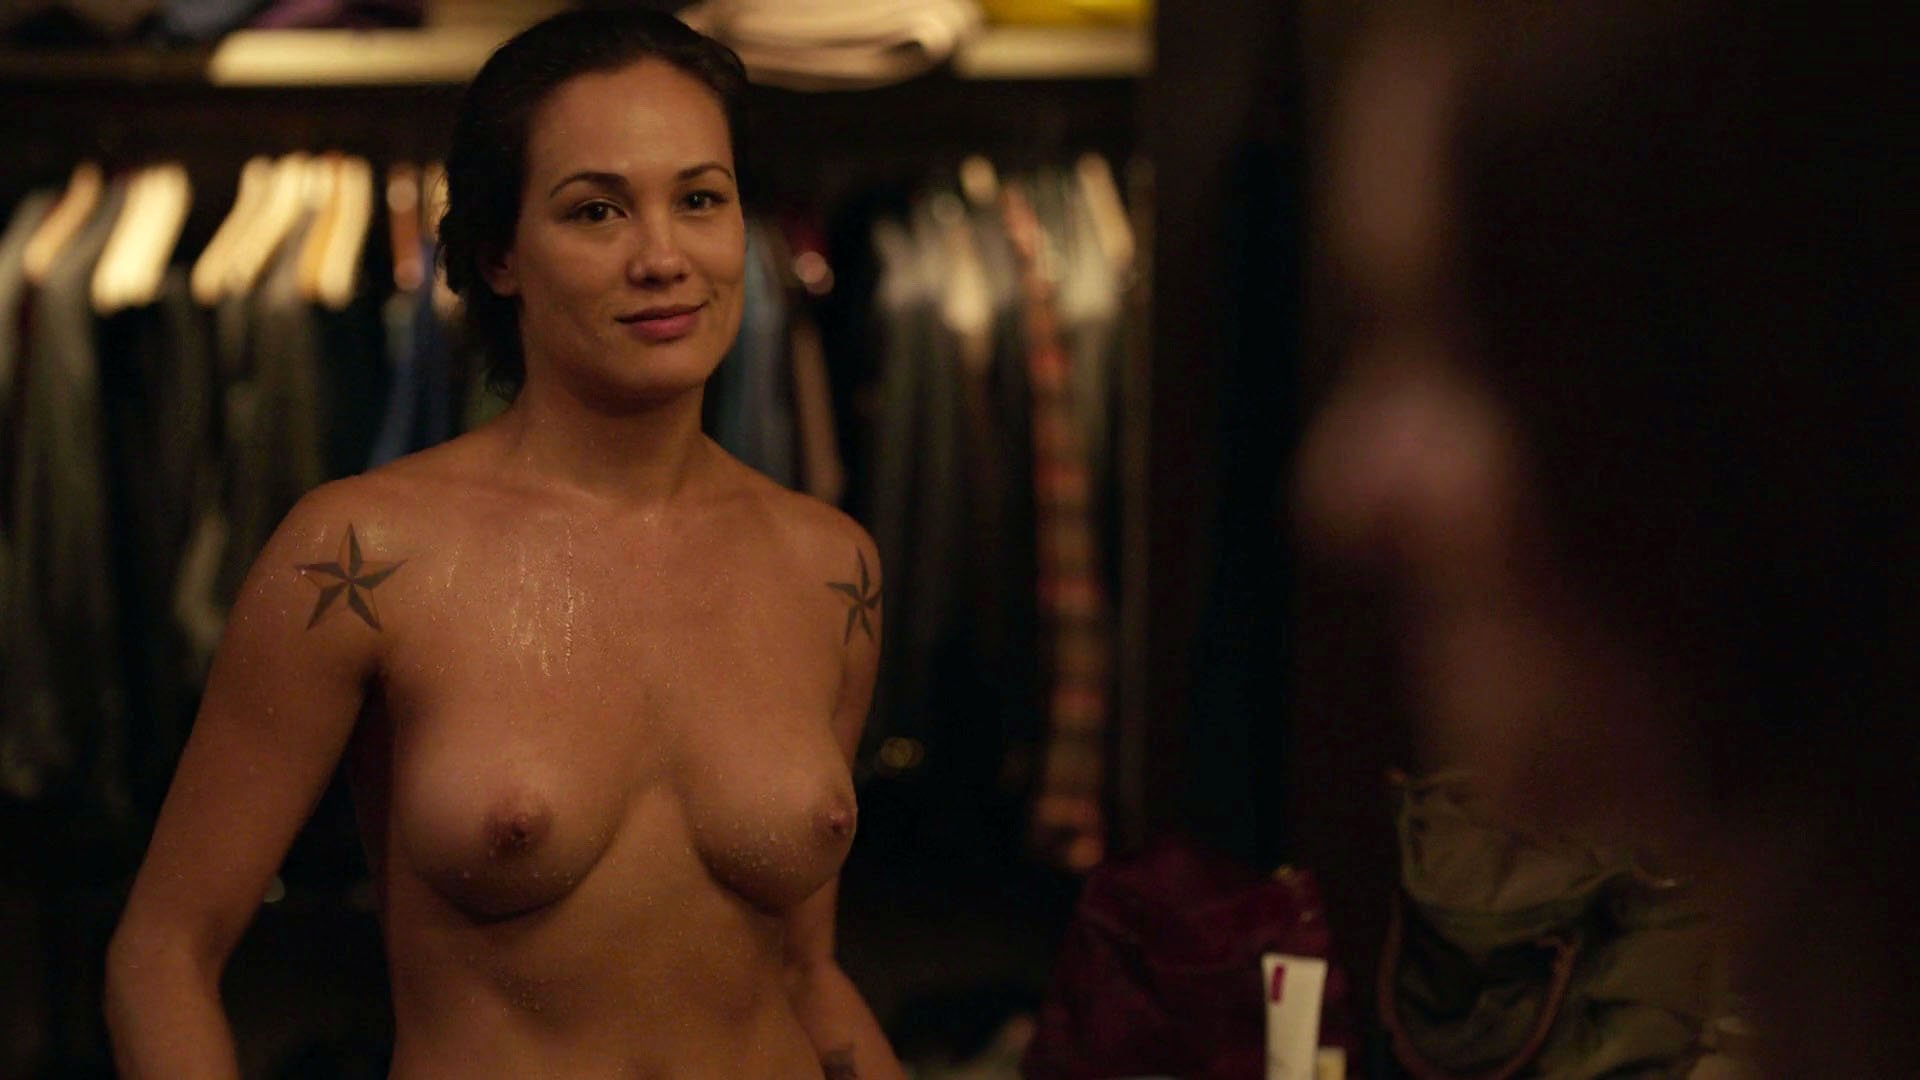 Nude scenes on tv are mistaken